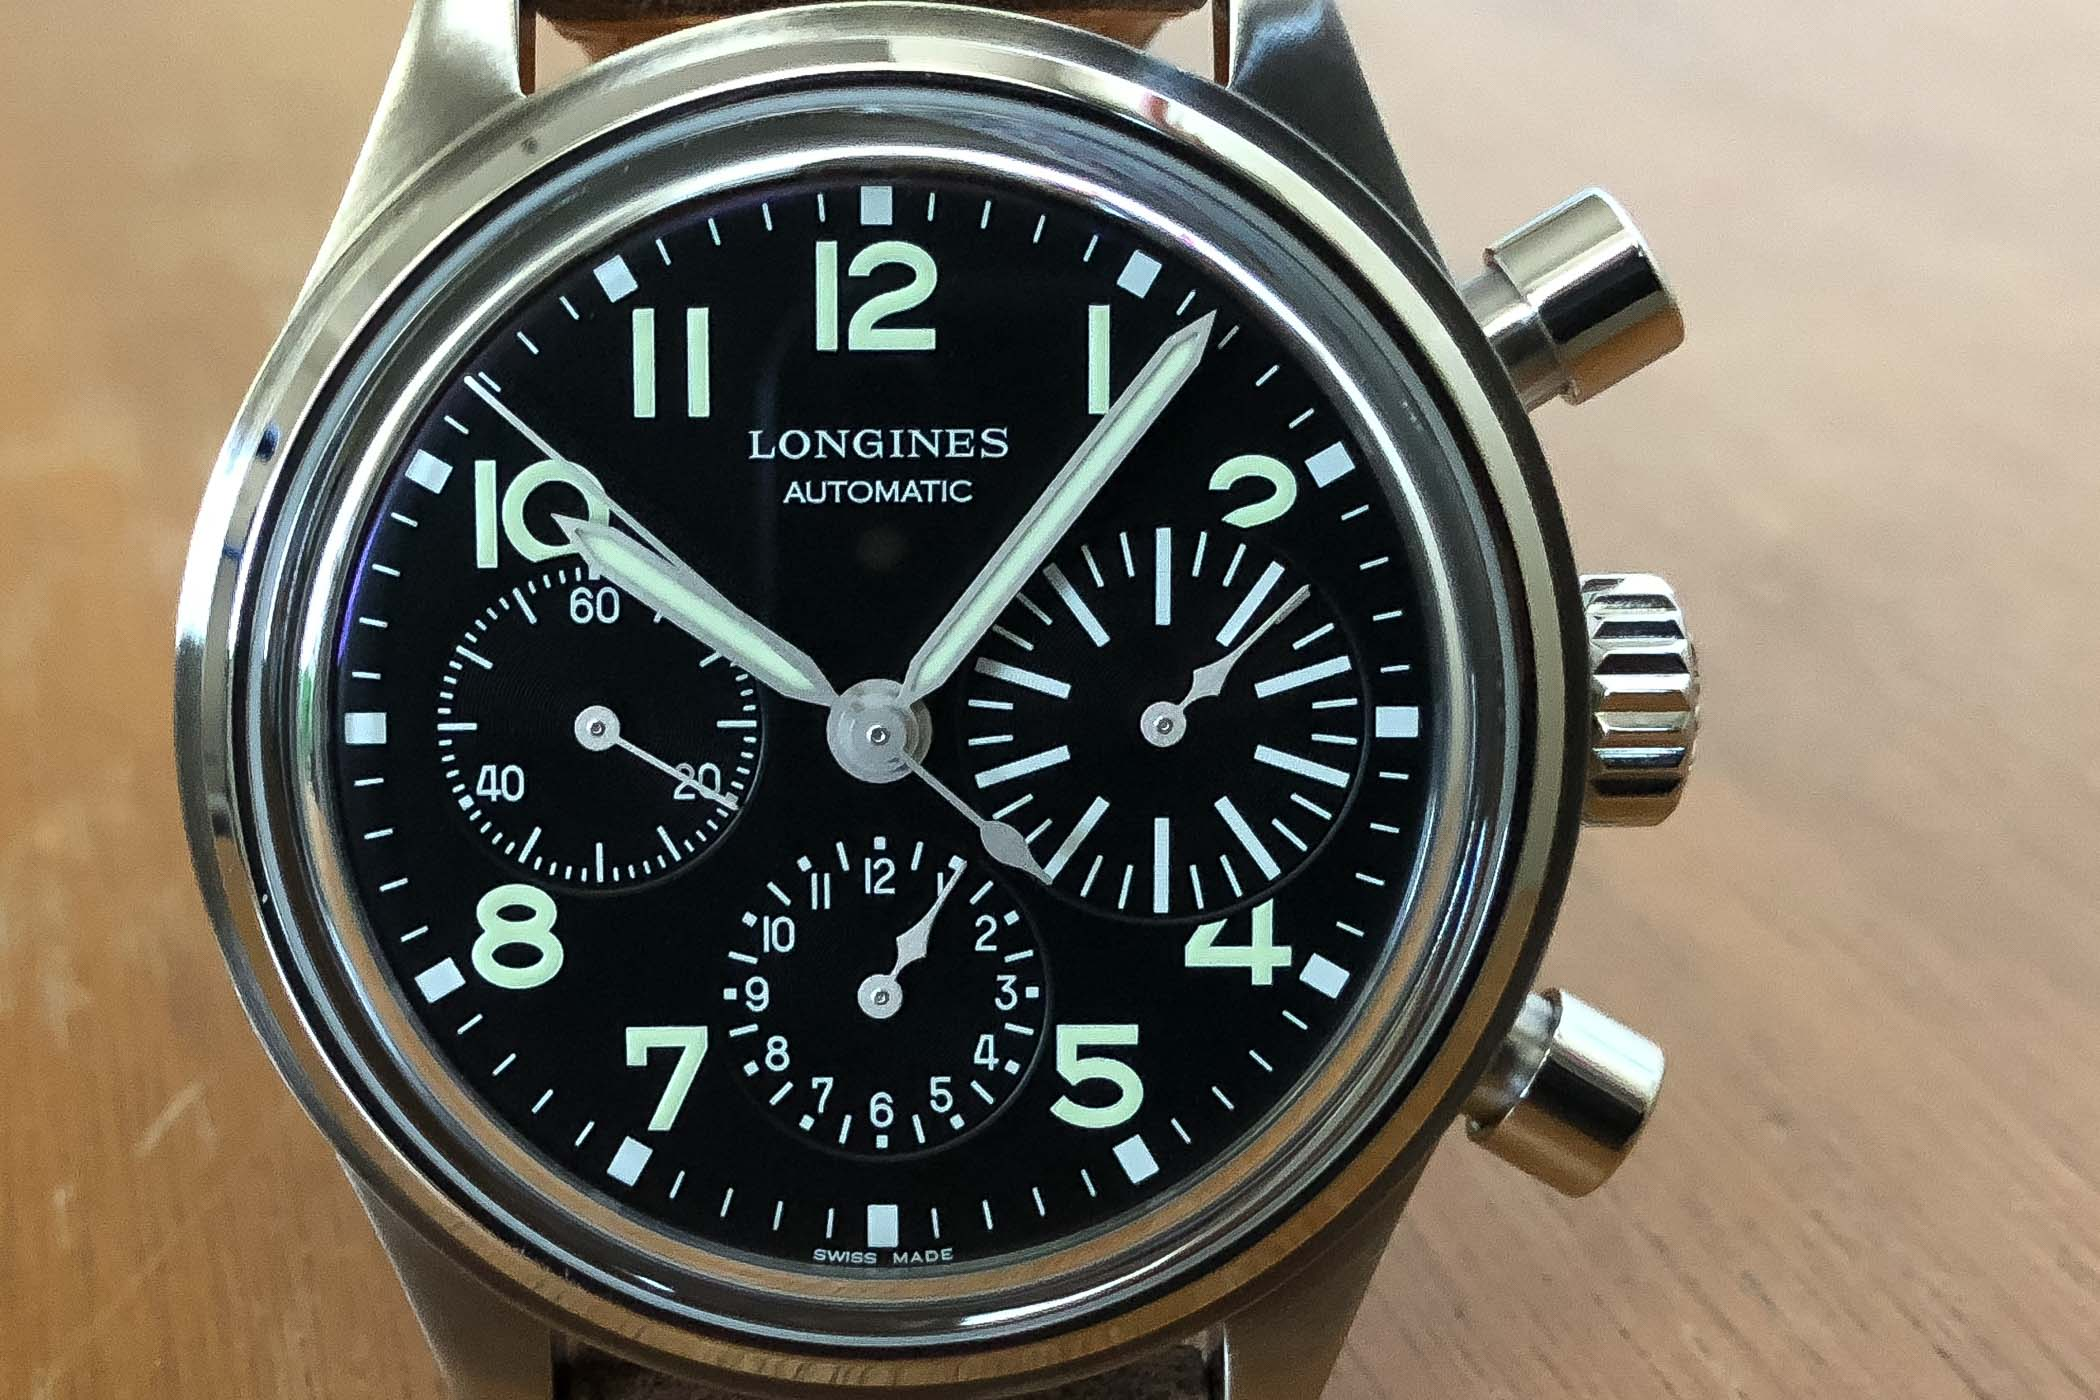 Longines Avigation BigEye Chronograph Pilot - Review